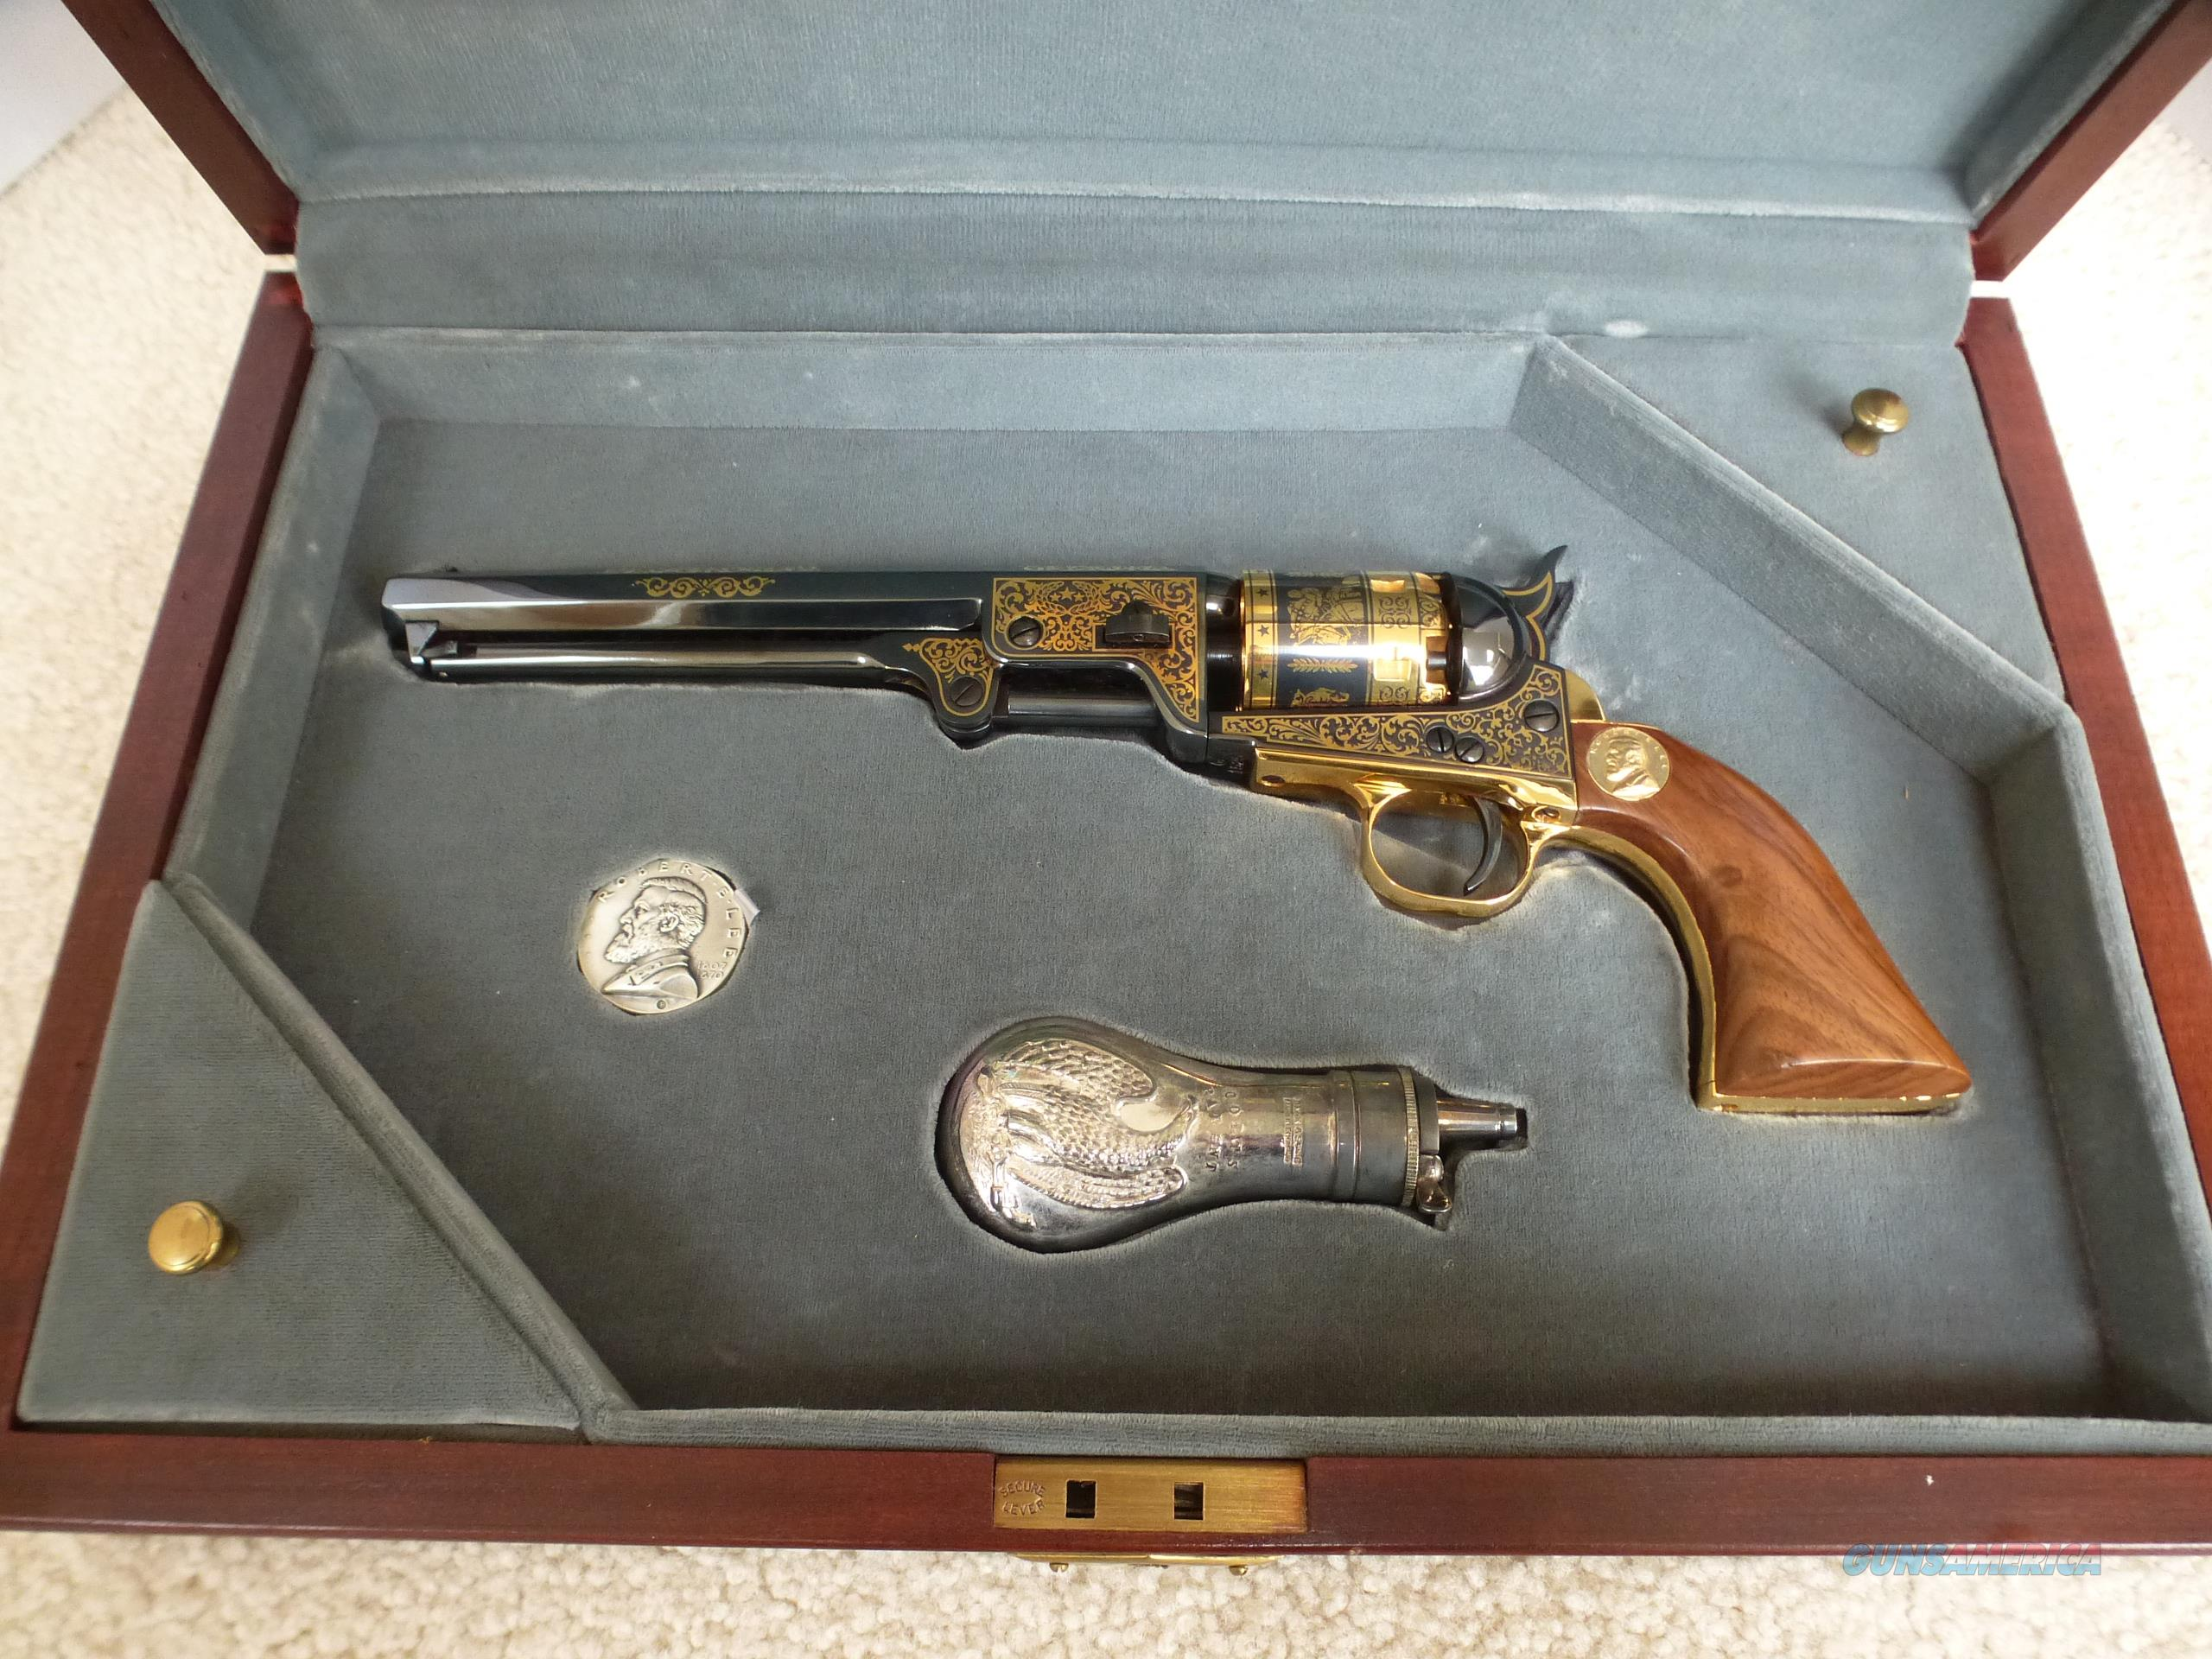 ROBERT E. LEE COMMEMORATIVE 51 Navy Colt Black Powder Pistol with Case in Excellent Condition -  Collector's Rare Find or Great Gift for the Western Fan  Guns > Pistols > Muzzleloading Modern & Replica Pistols (perc)